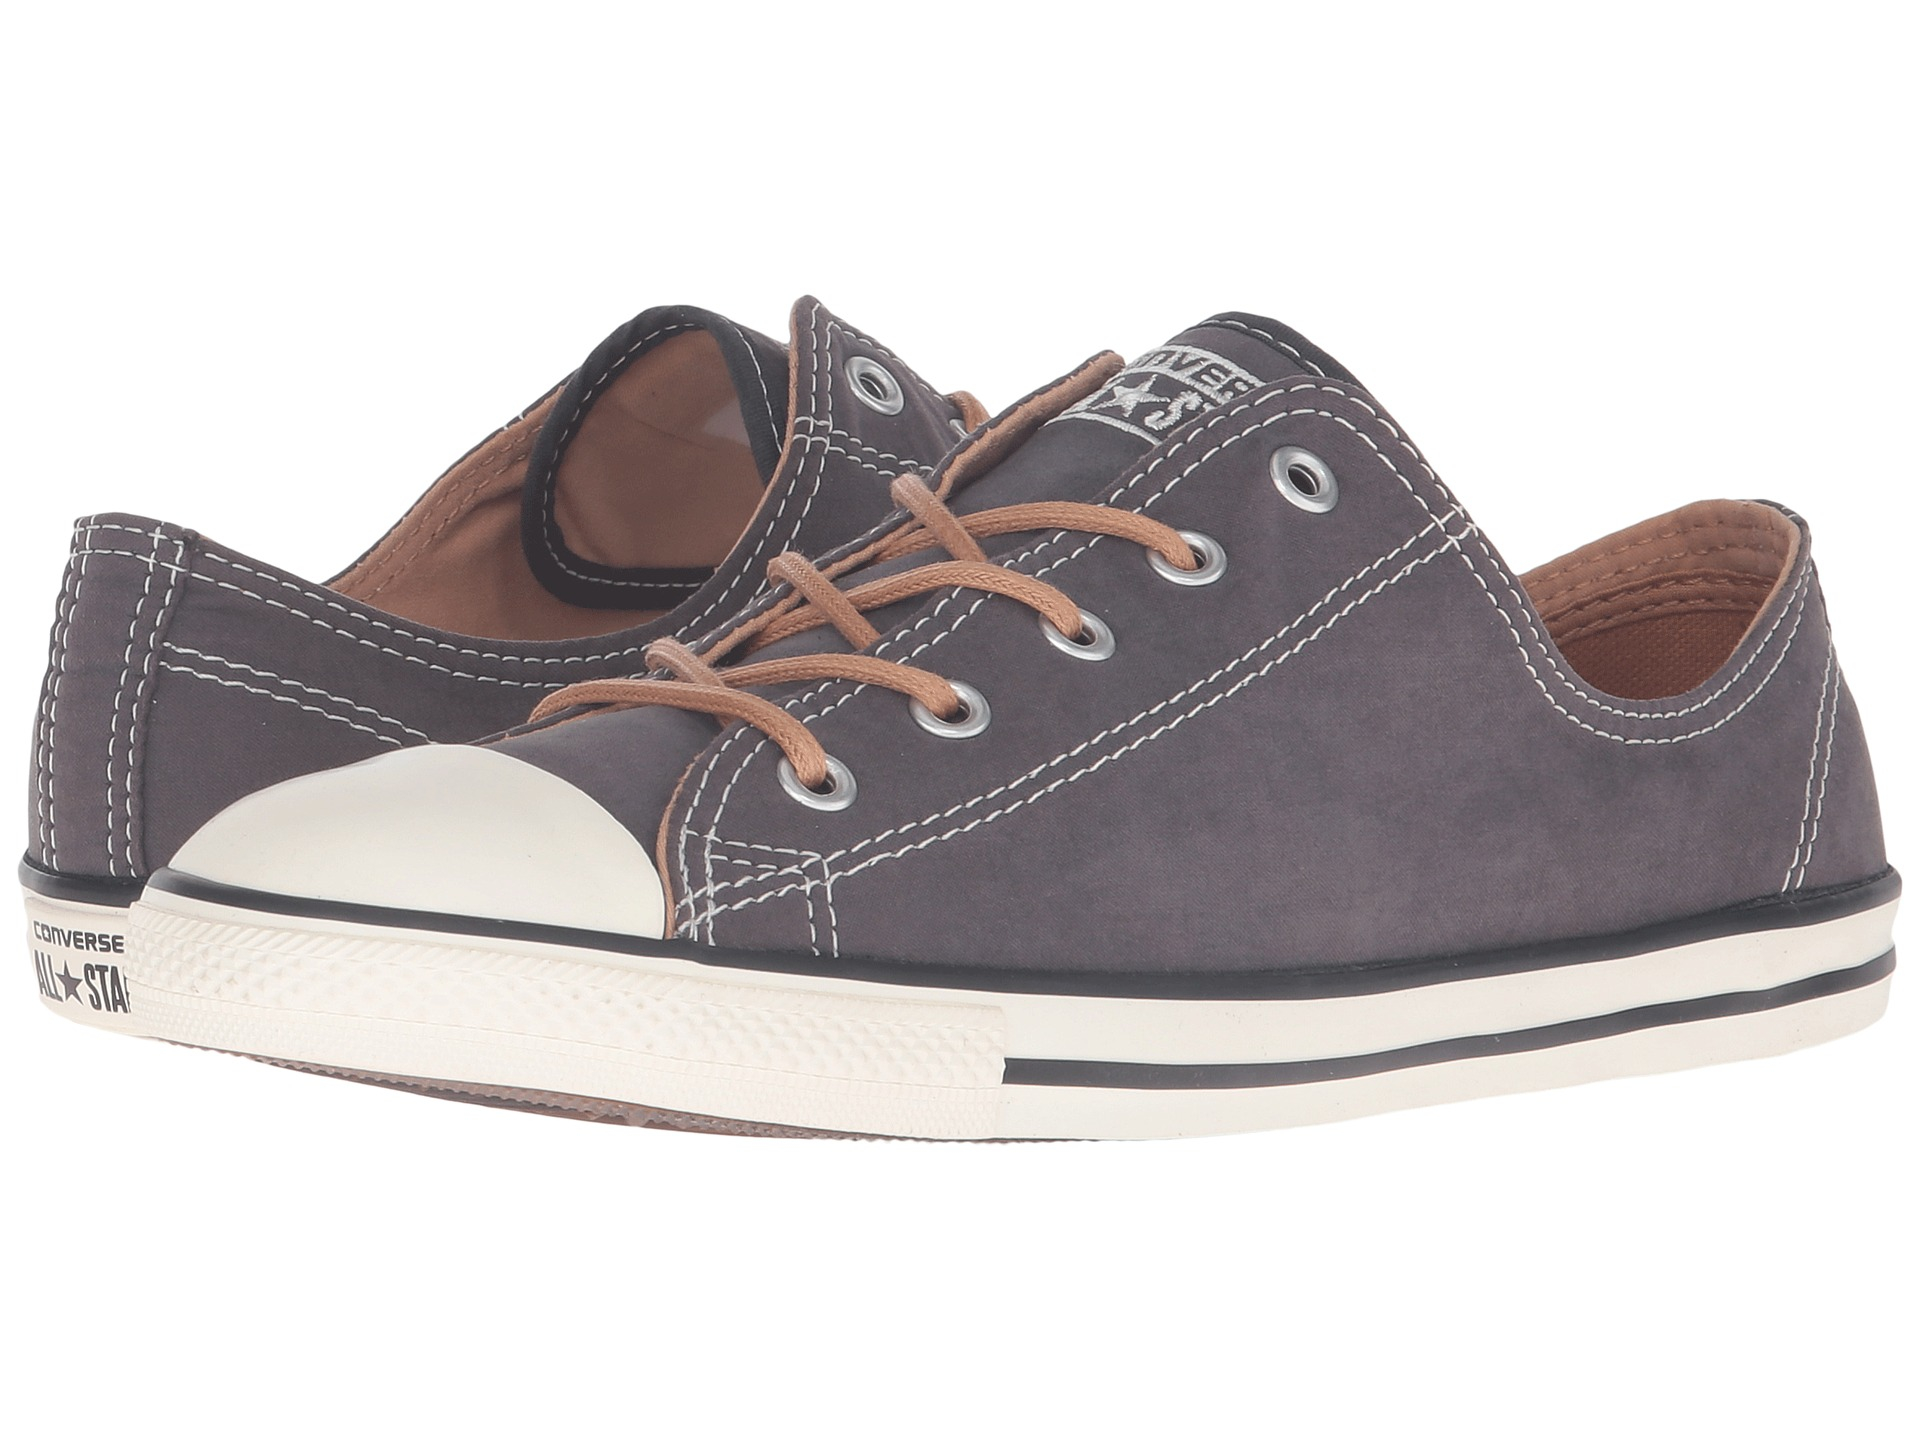 5f508f7c0352 Gallery. Previously sold at  Zappos · Women s Converse Chuck Taylor ...